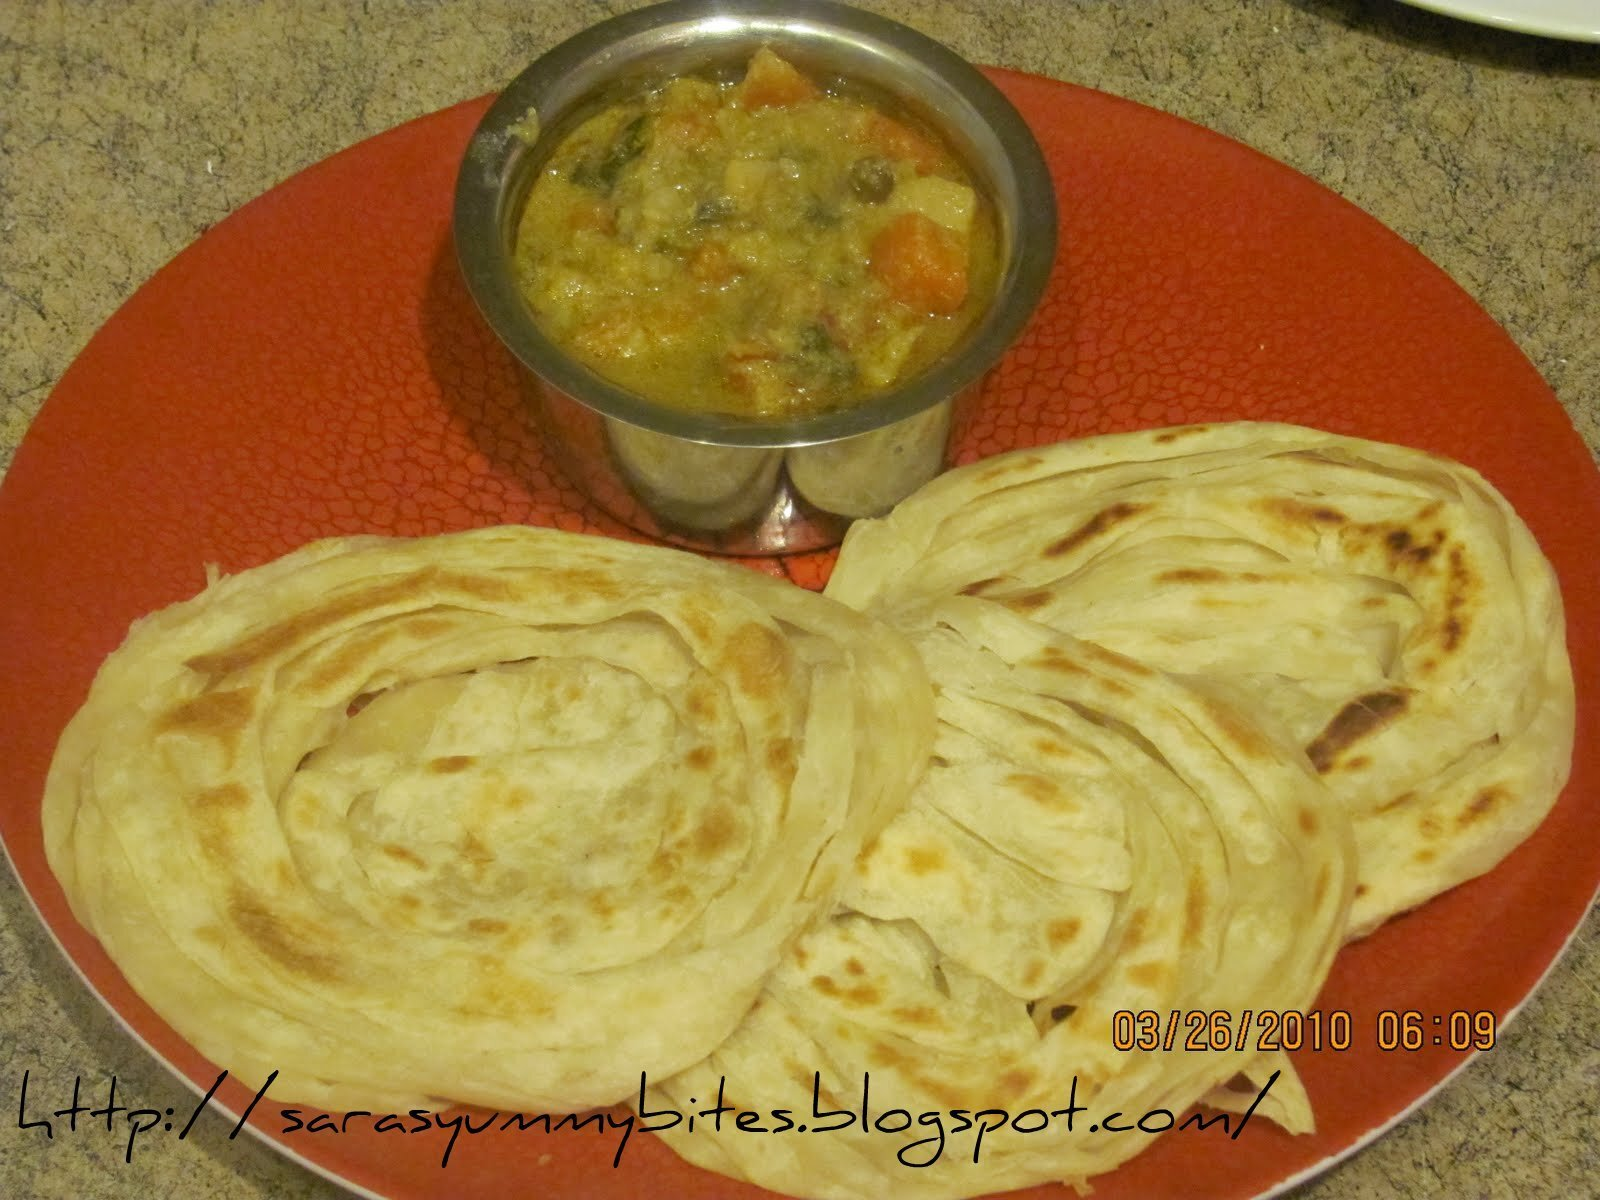 parathas and puries